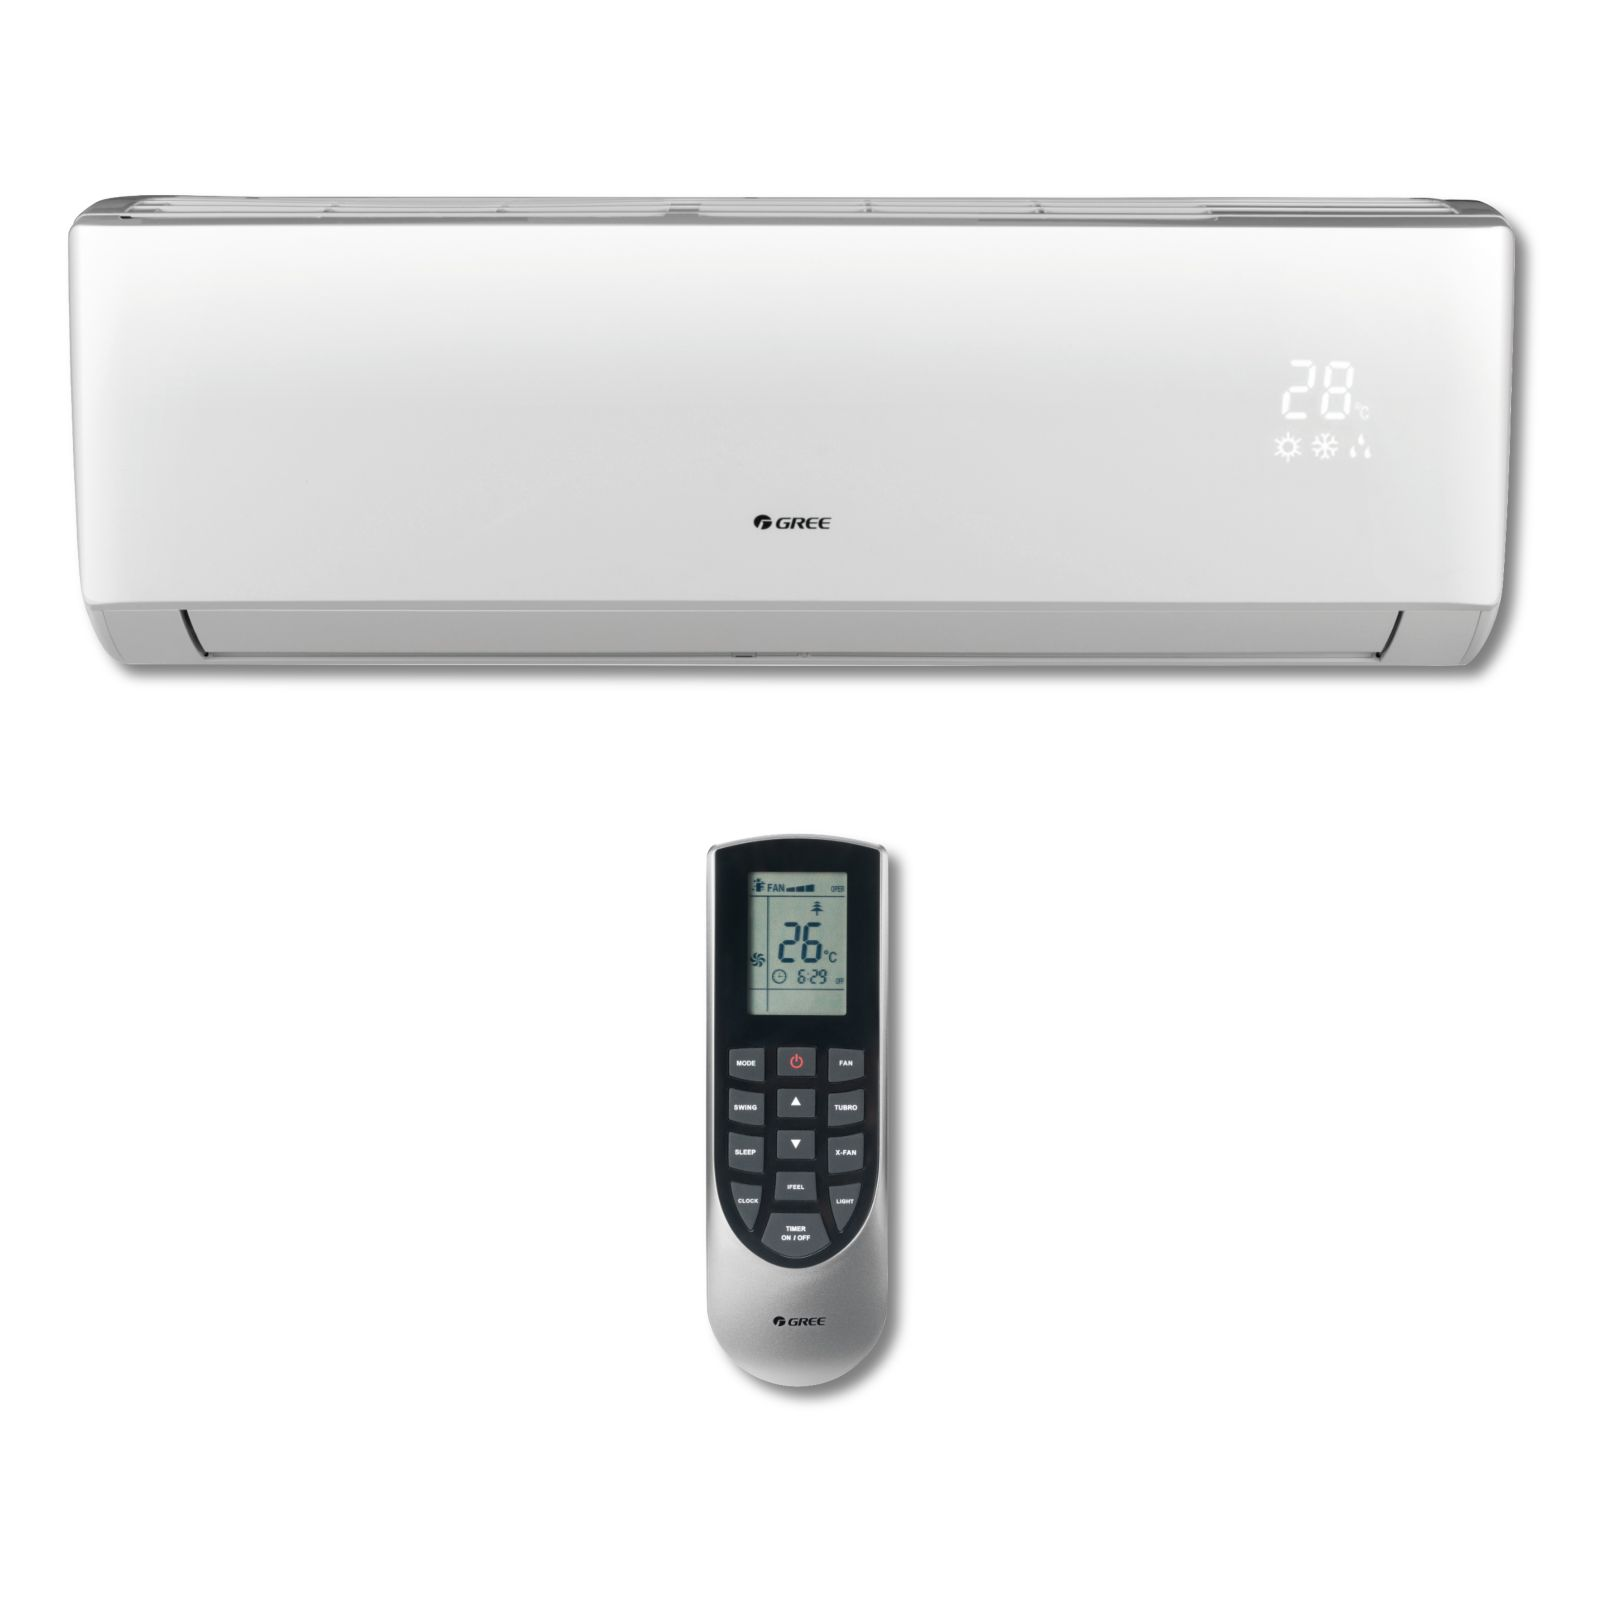 GREE VIR24HP230V1AH - Vireo 24,000 BTU Wall Mounted Inverter Heat Pump Indoor Unit